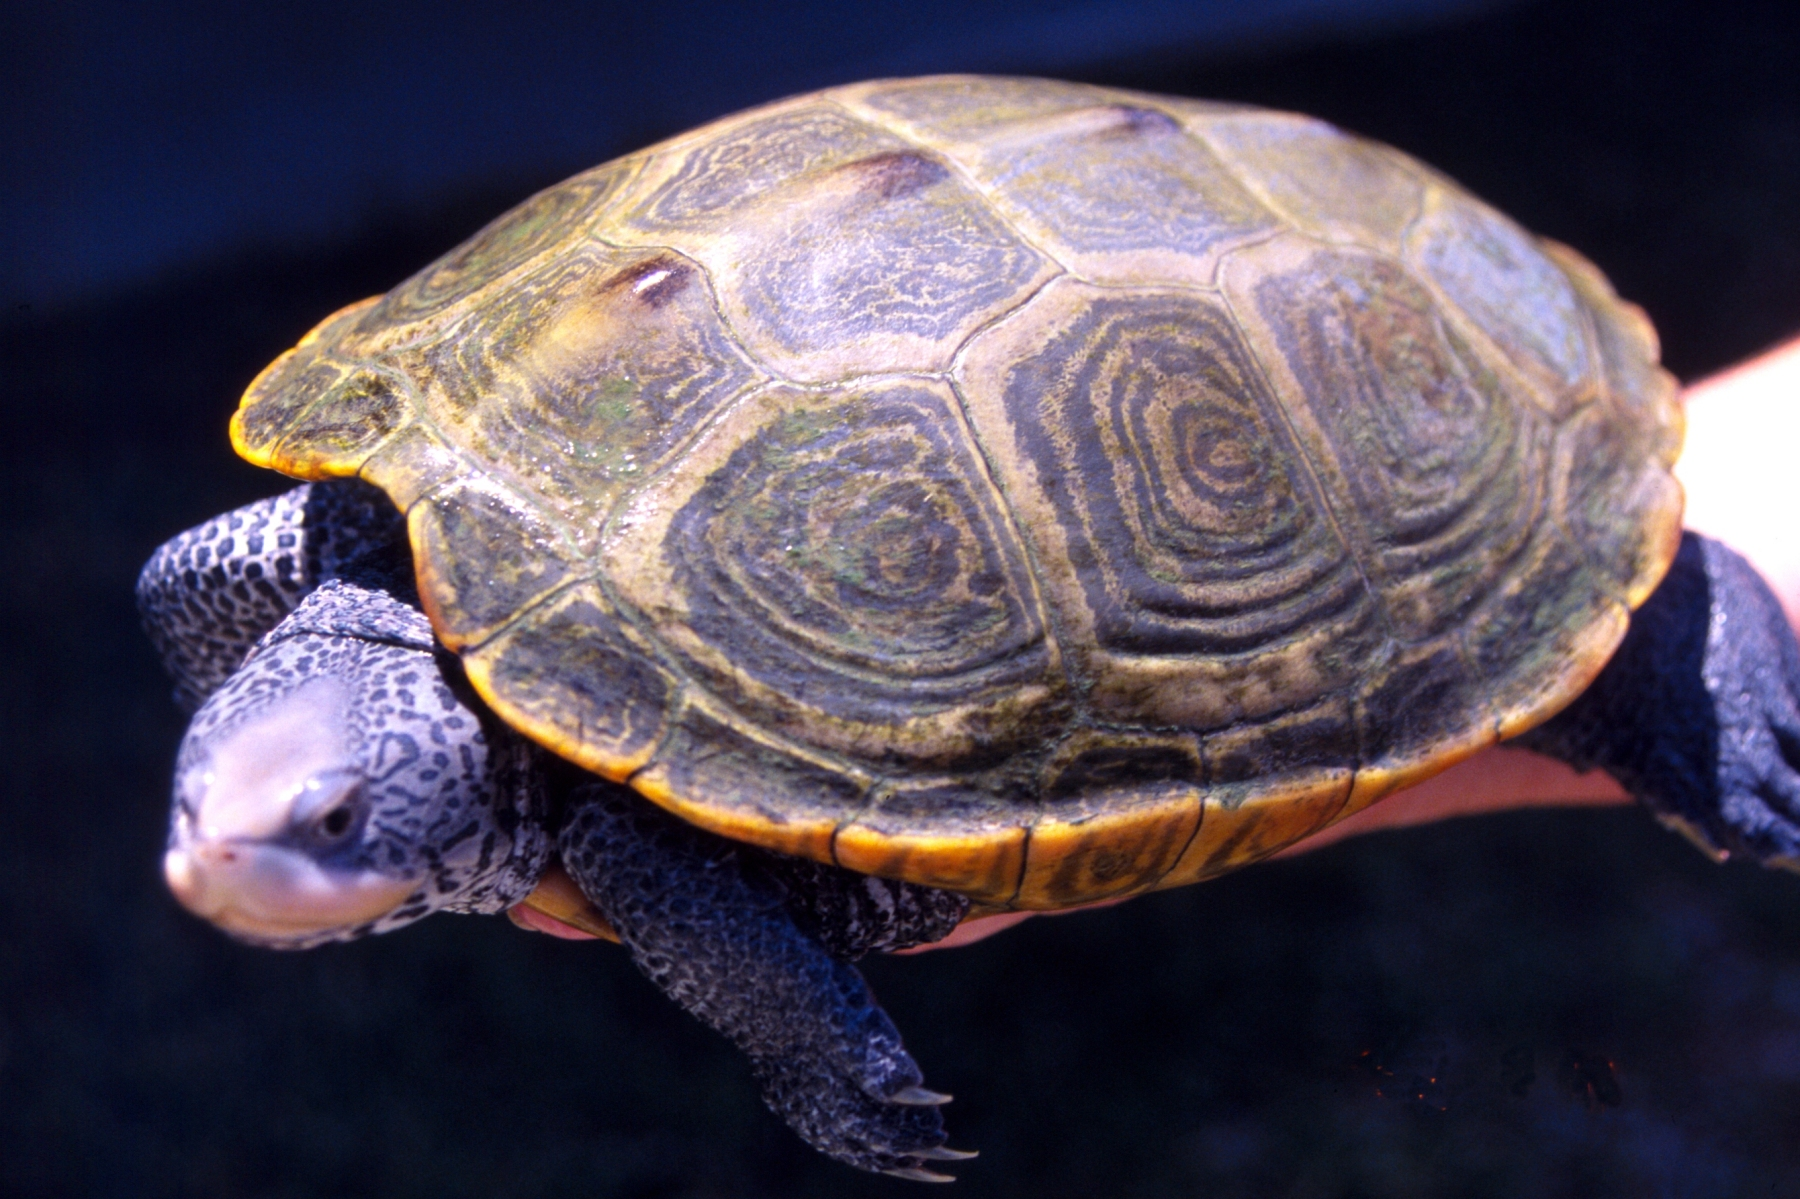 Diamondback terrapin - Wikipedia, the free encyclopedia